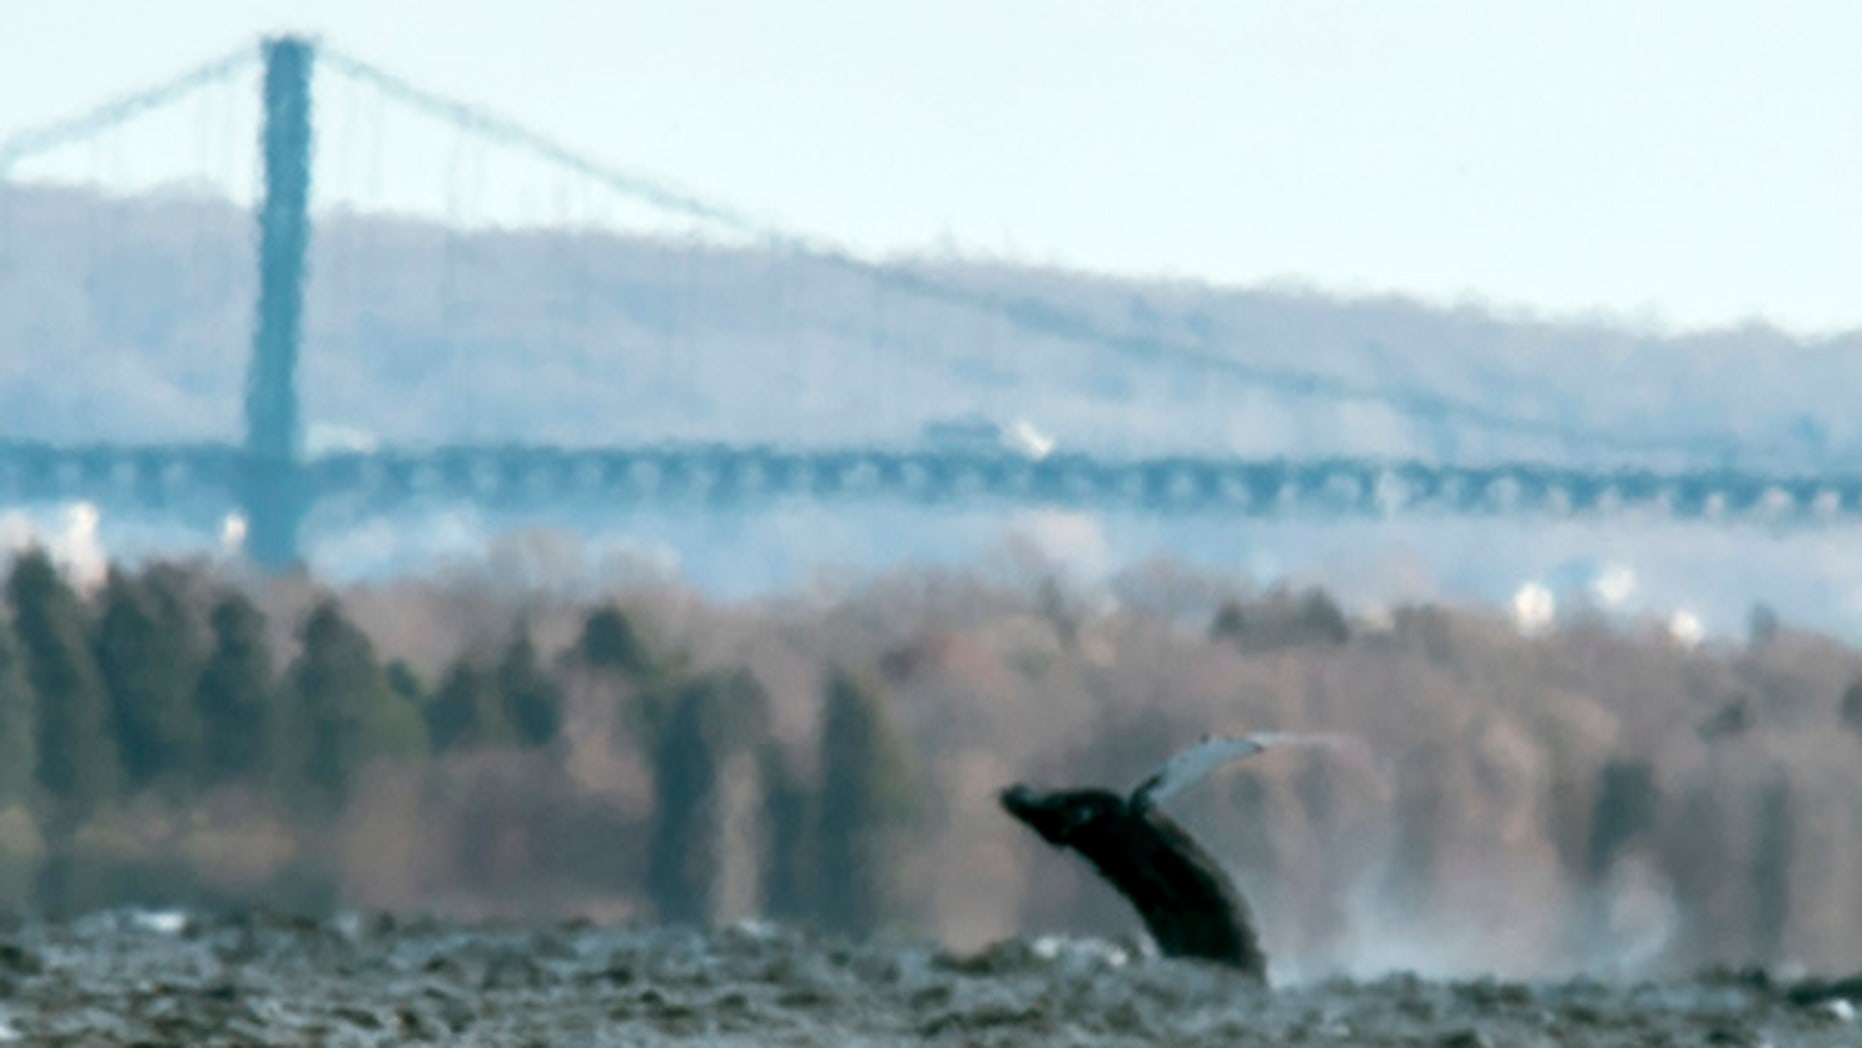 Dec. 28, 2015: In this photo provided by North Kingstown, R.I., Harbormaster Ed Hughes, a humpback whale breaches the surface near the Mount Hope Bridge in Rhode Island's Narragansett Bay.